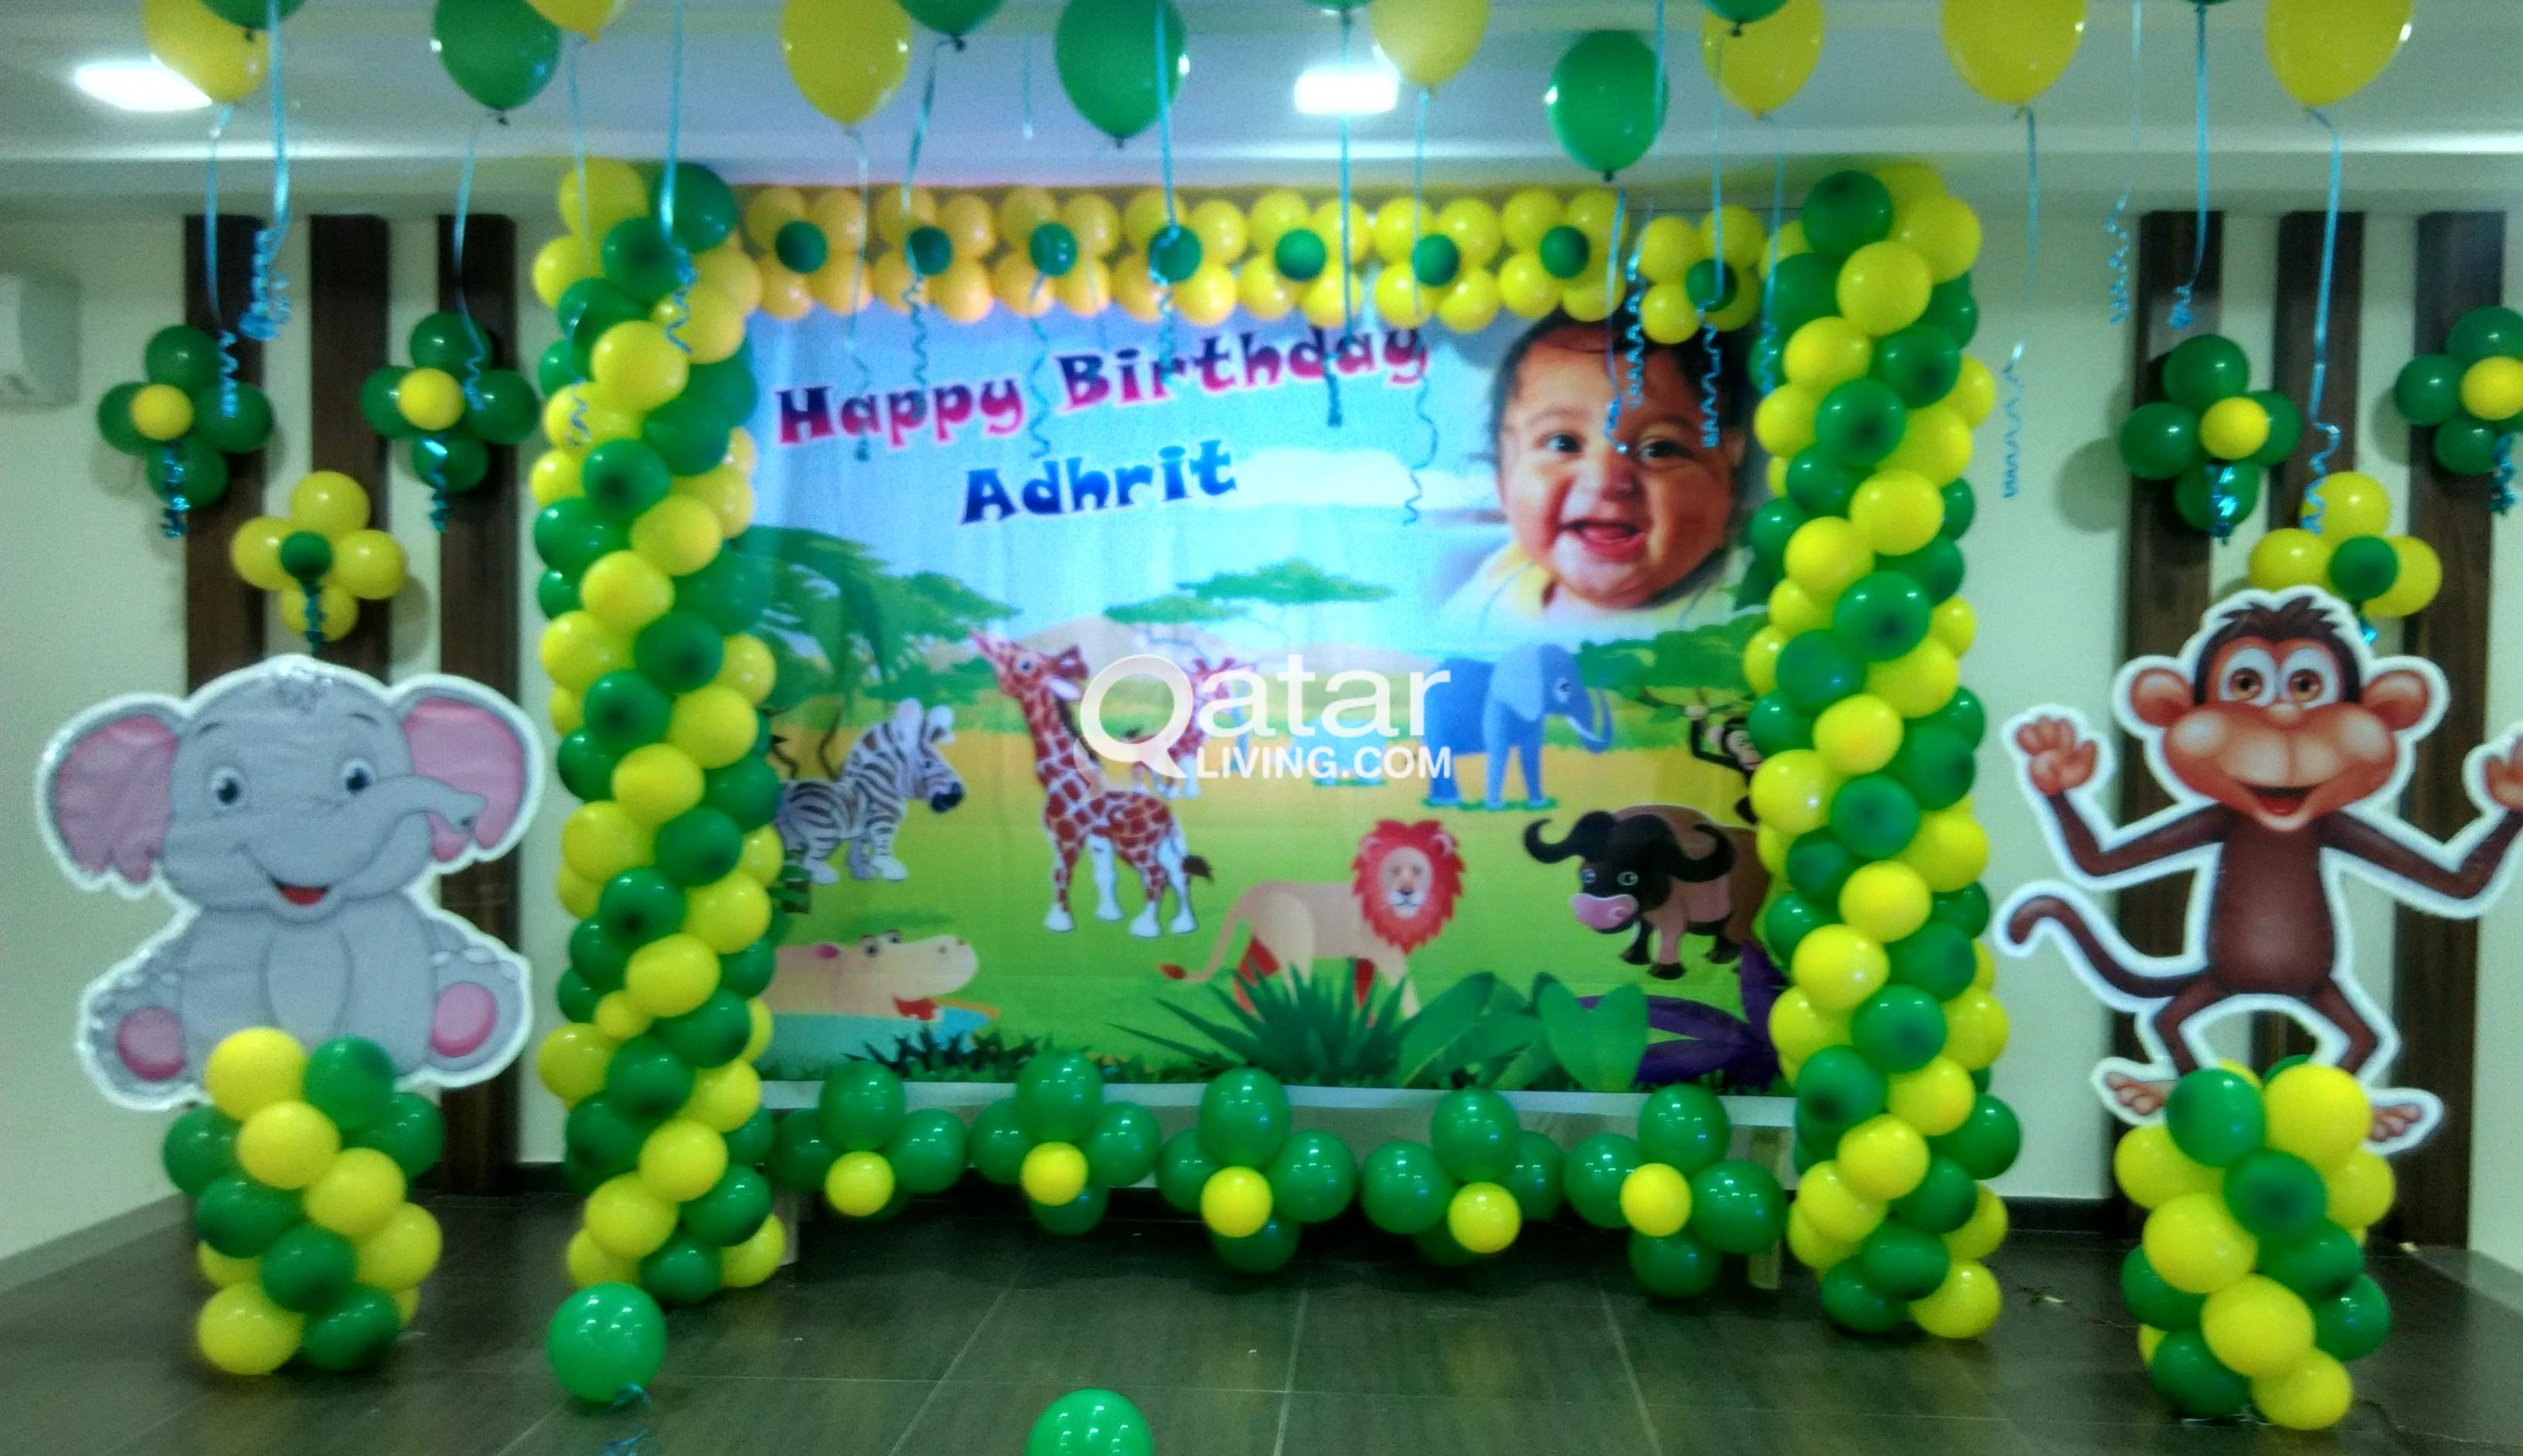 Knk balloon decorations work call 33662383 qatar living for 1 year birthday decoration